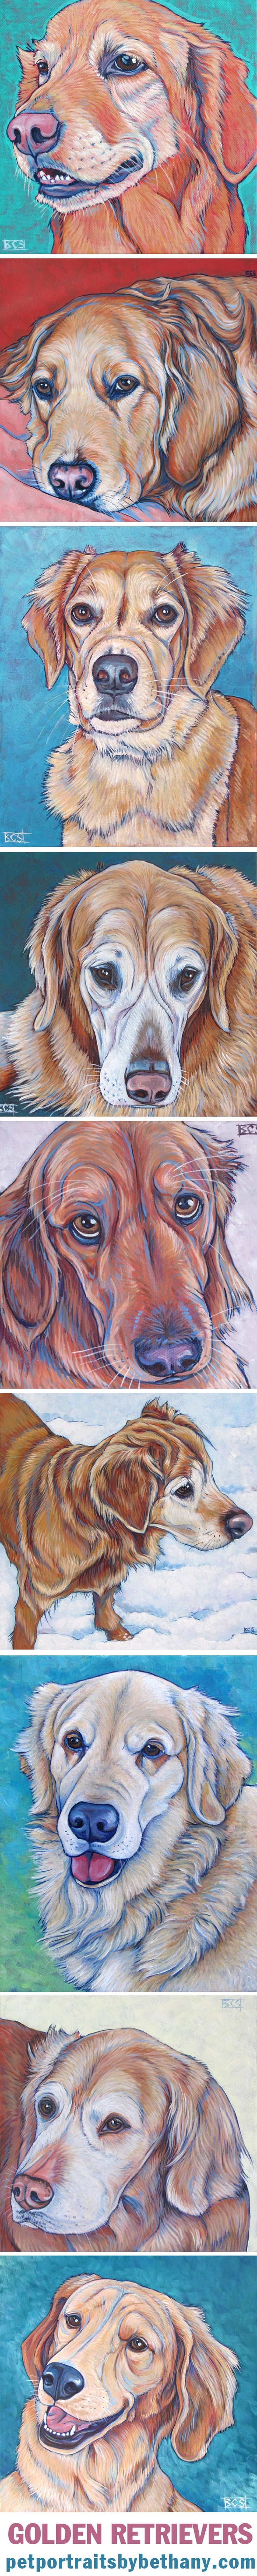 Golden Retriever Dogs by Bethany.